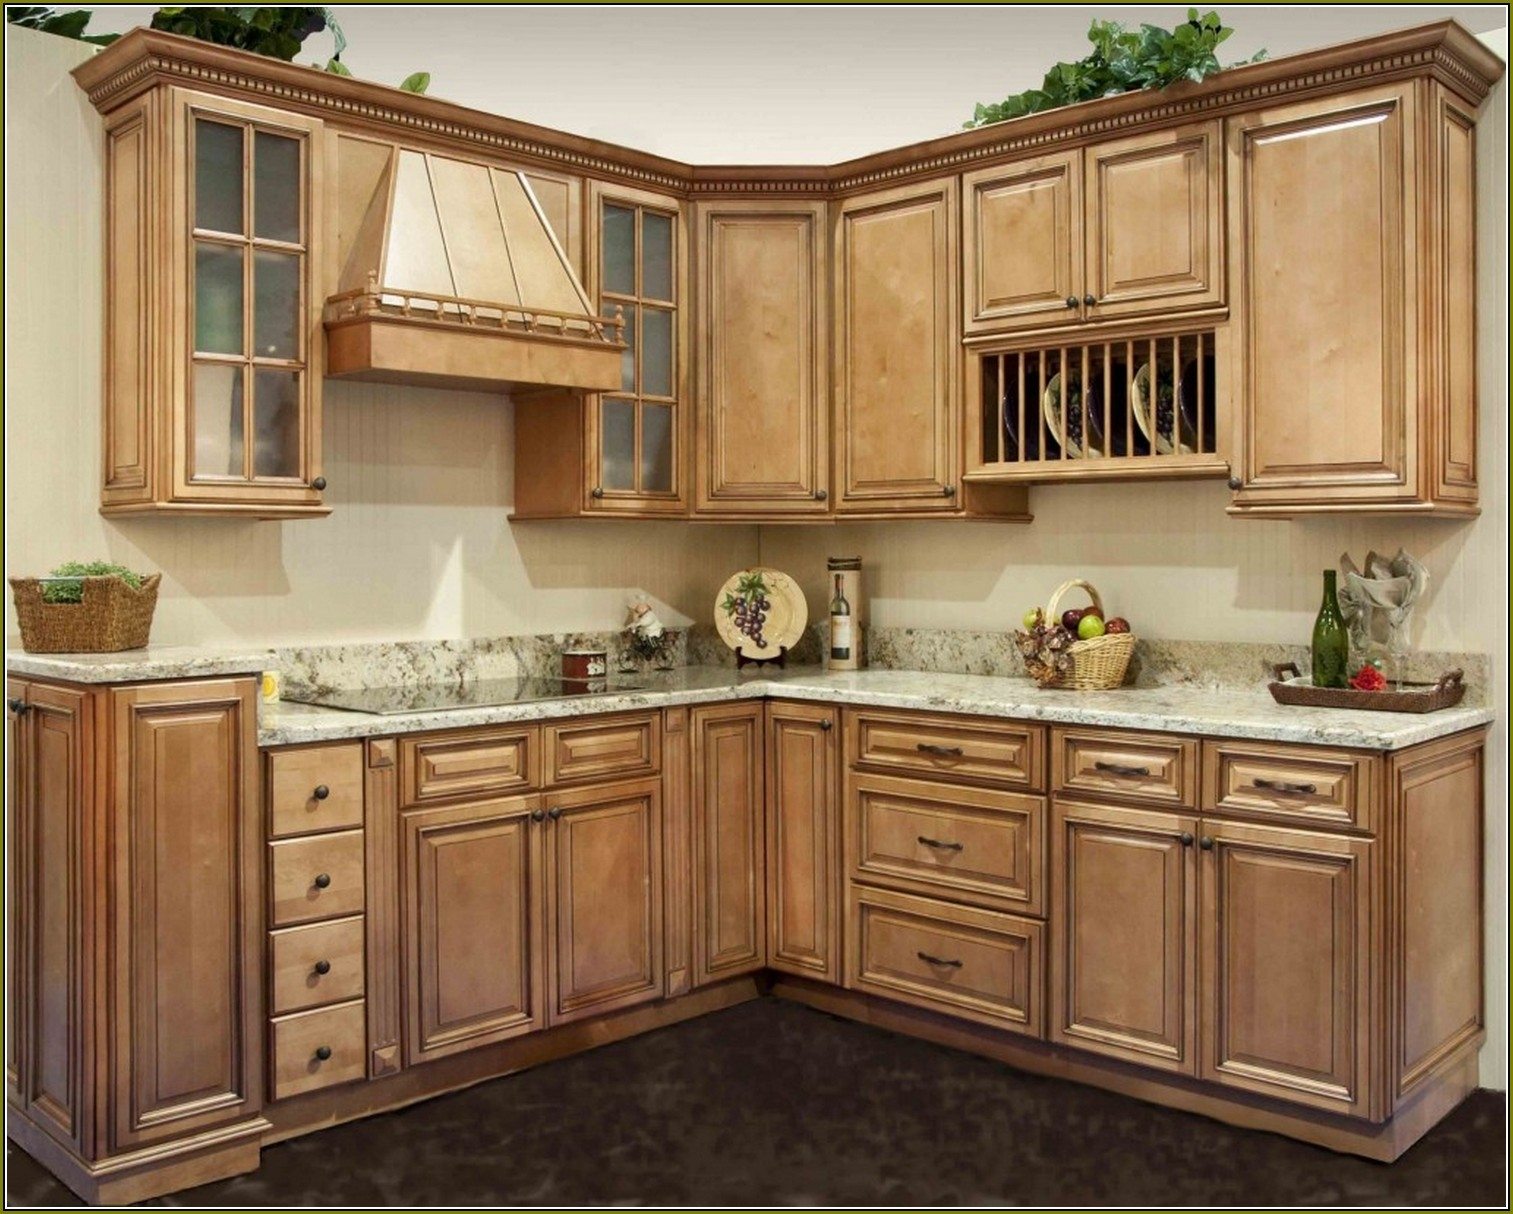 Update Kitchen Cabinets With Molding